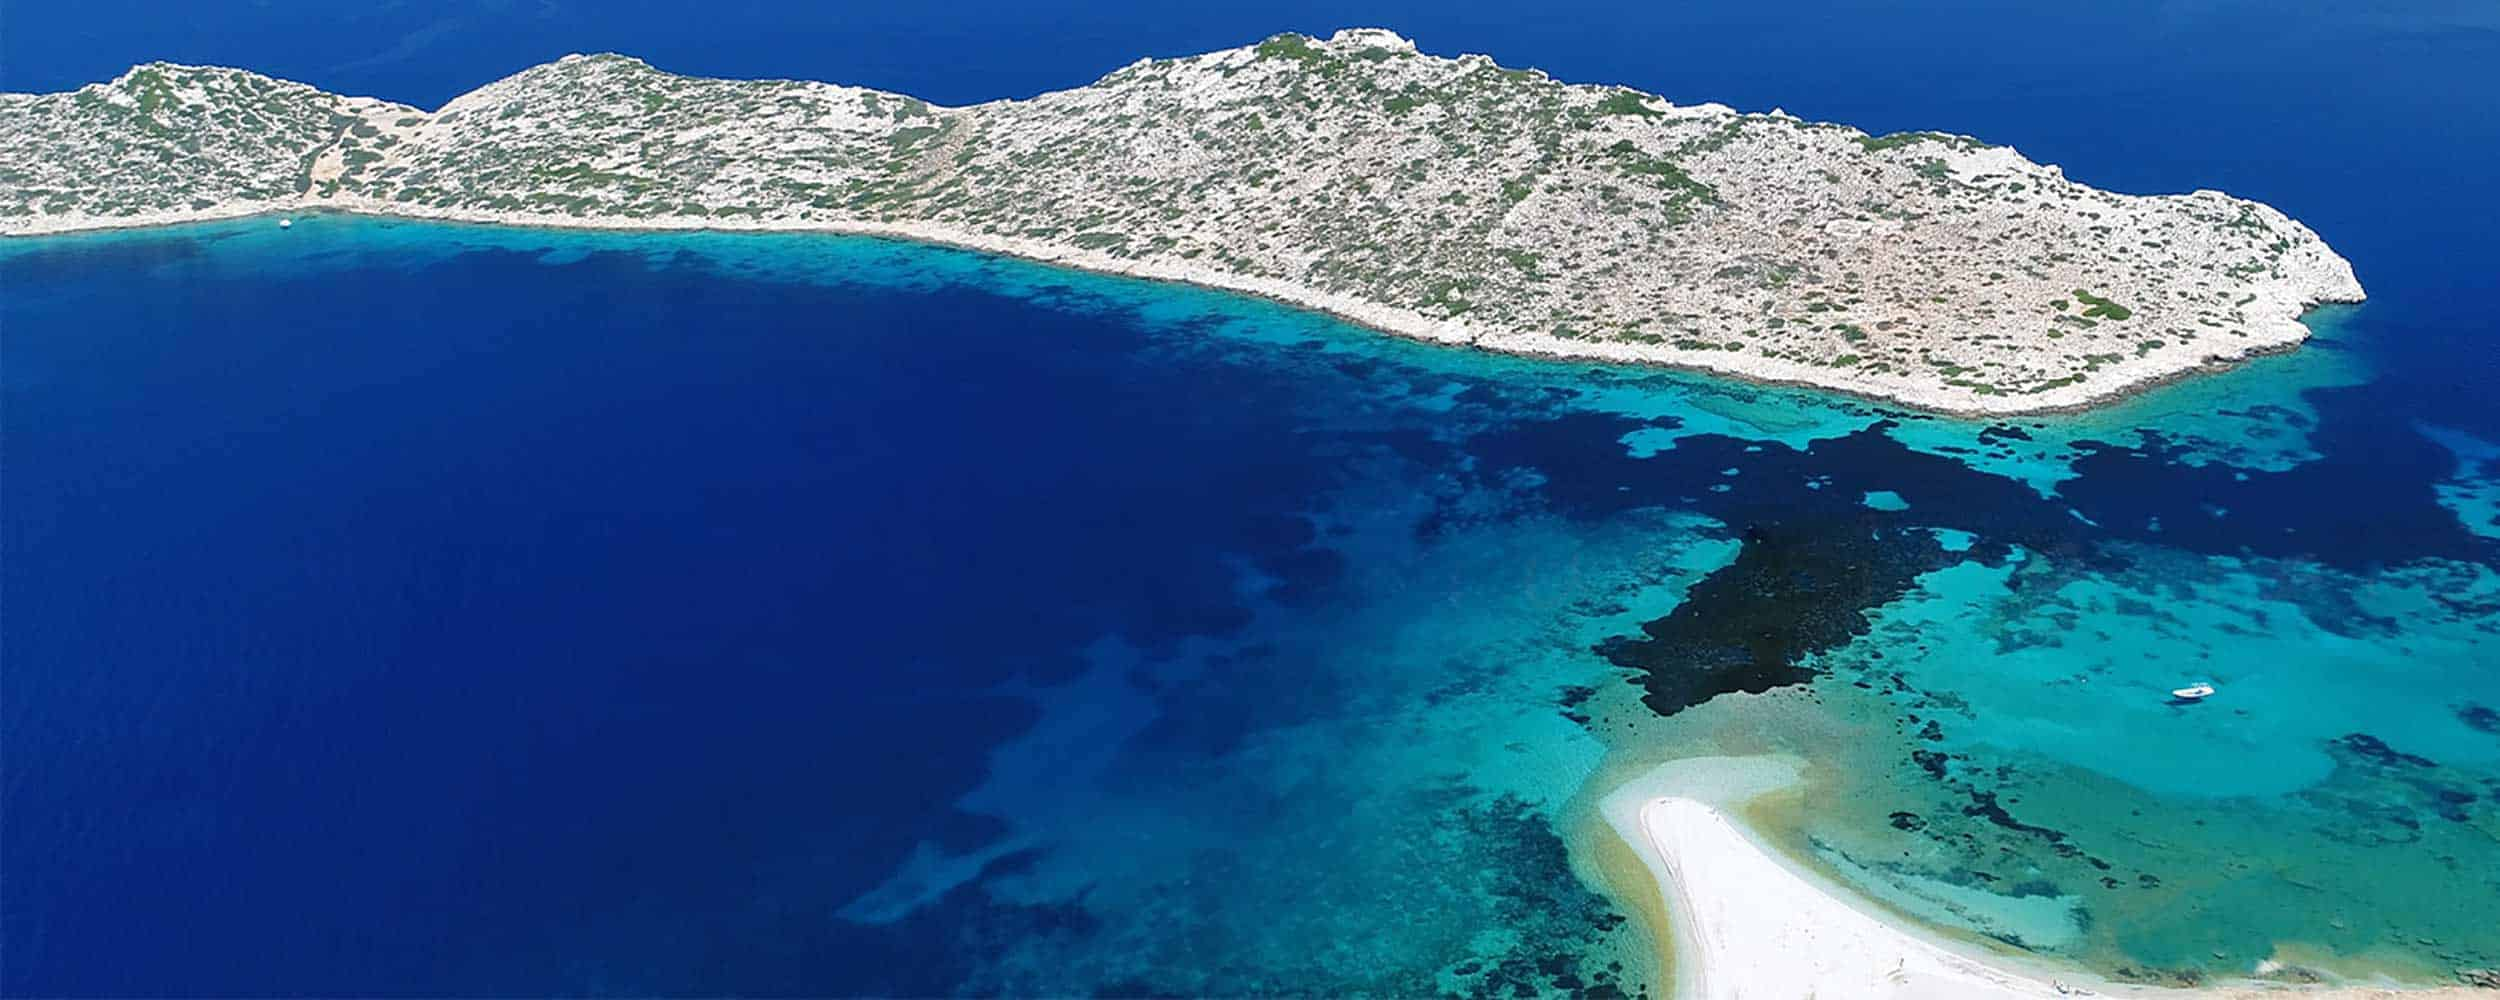 How To Come Aegialis Hotel Amp Spa Amorgos